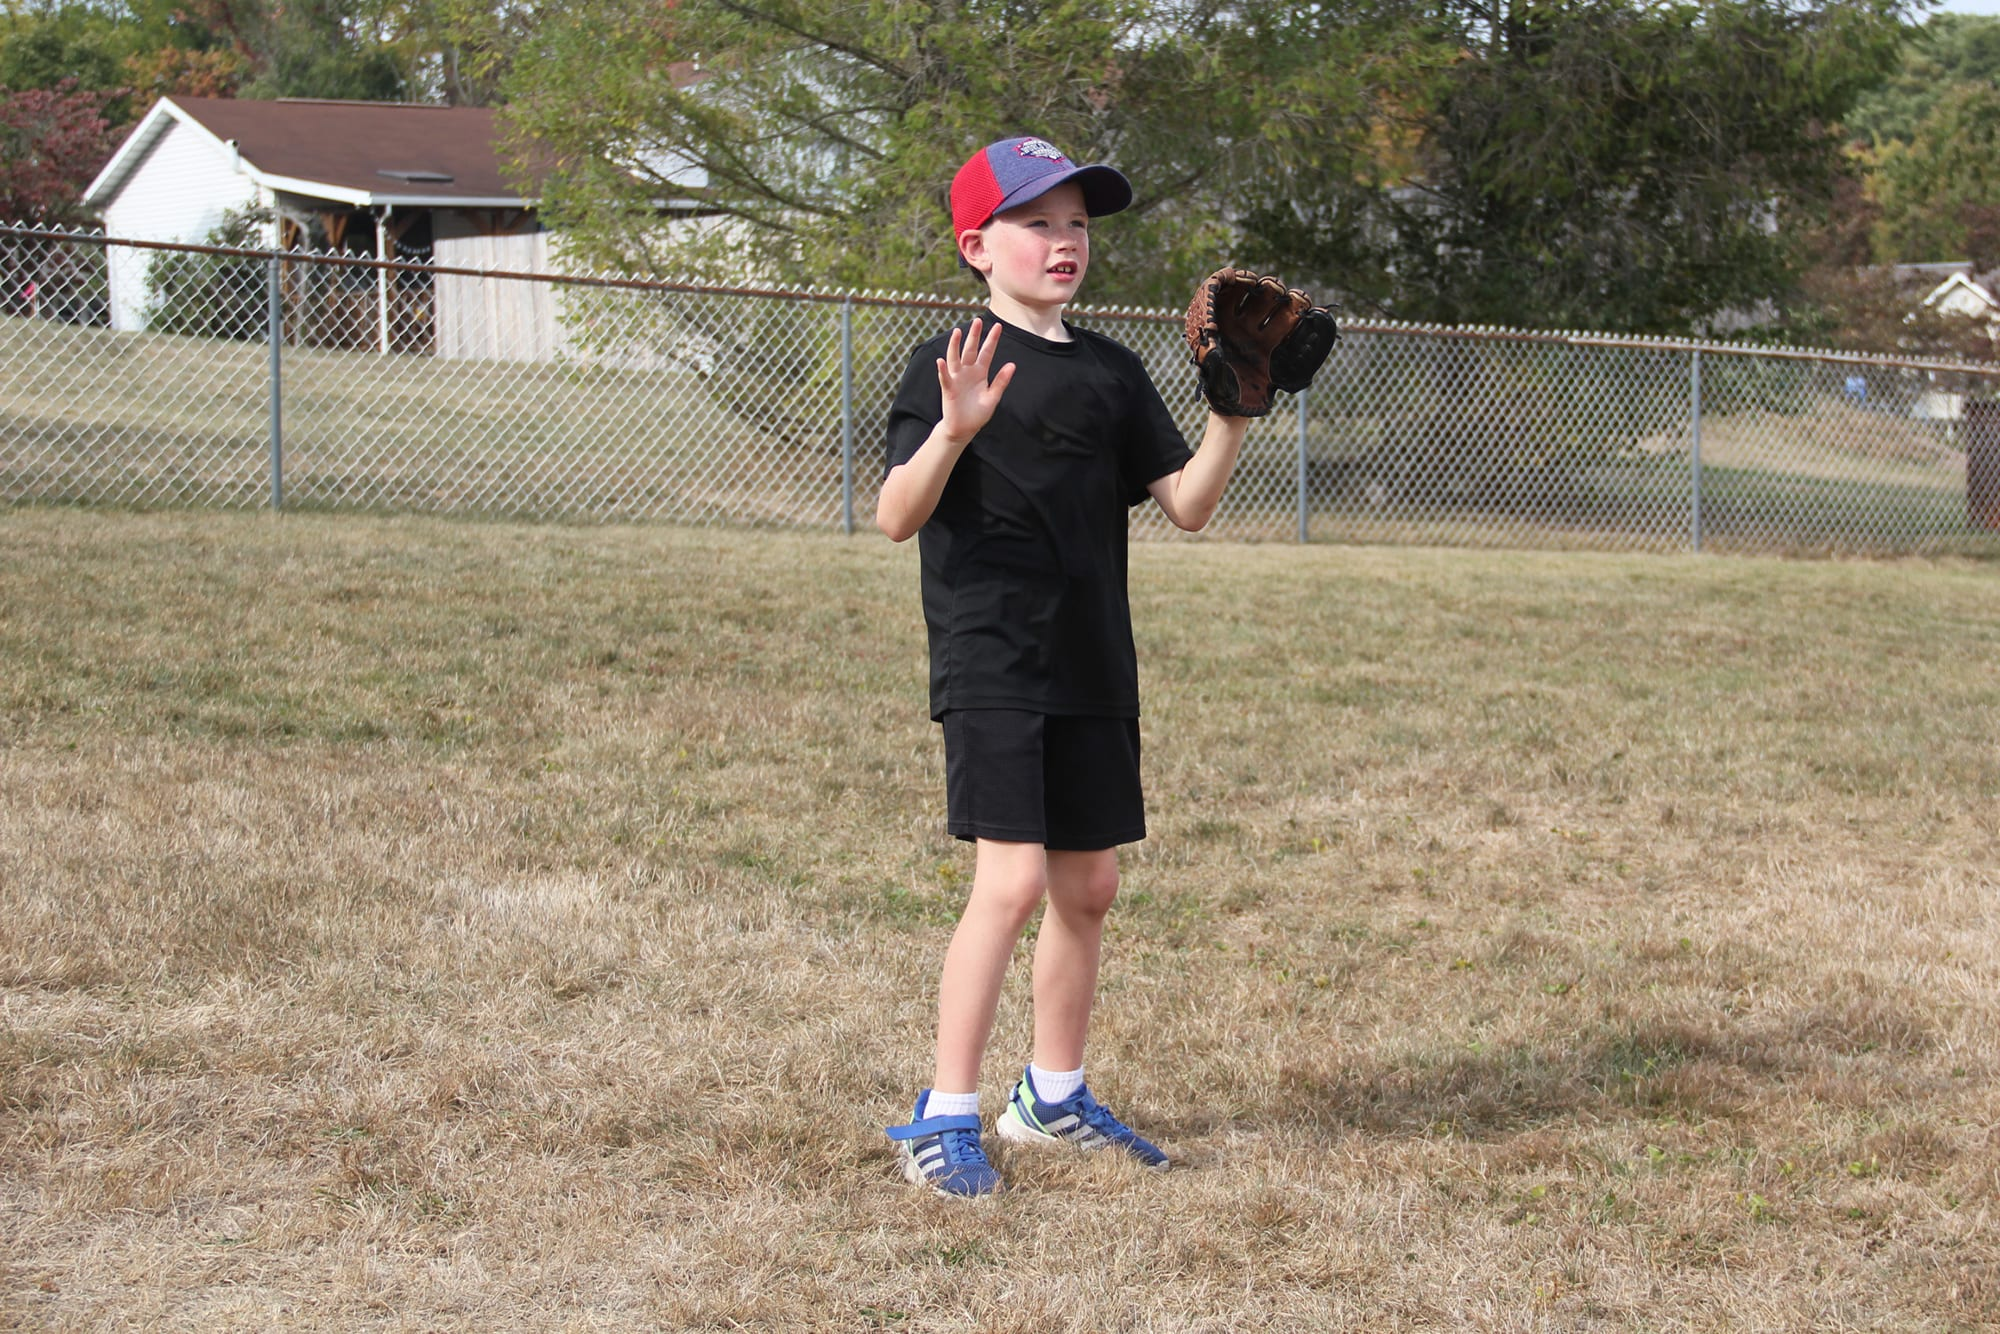 player ready to catch ball